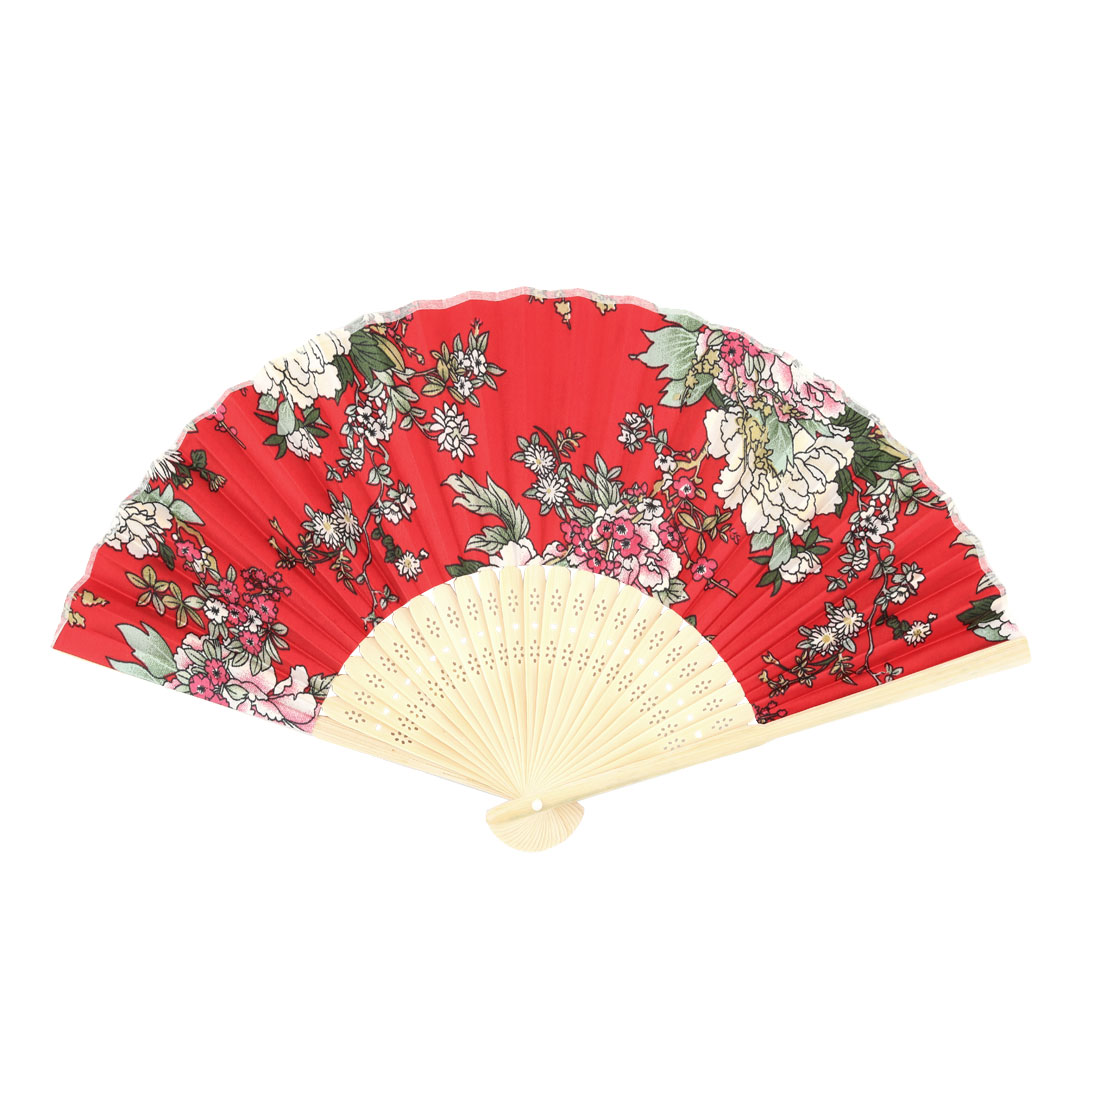 Women Dancing Party Bamboo Frame Peony Pattern Handheld Cooling Folding Fan Multicolor